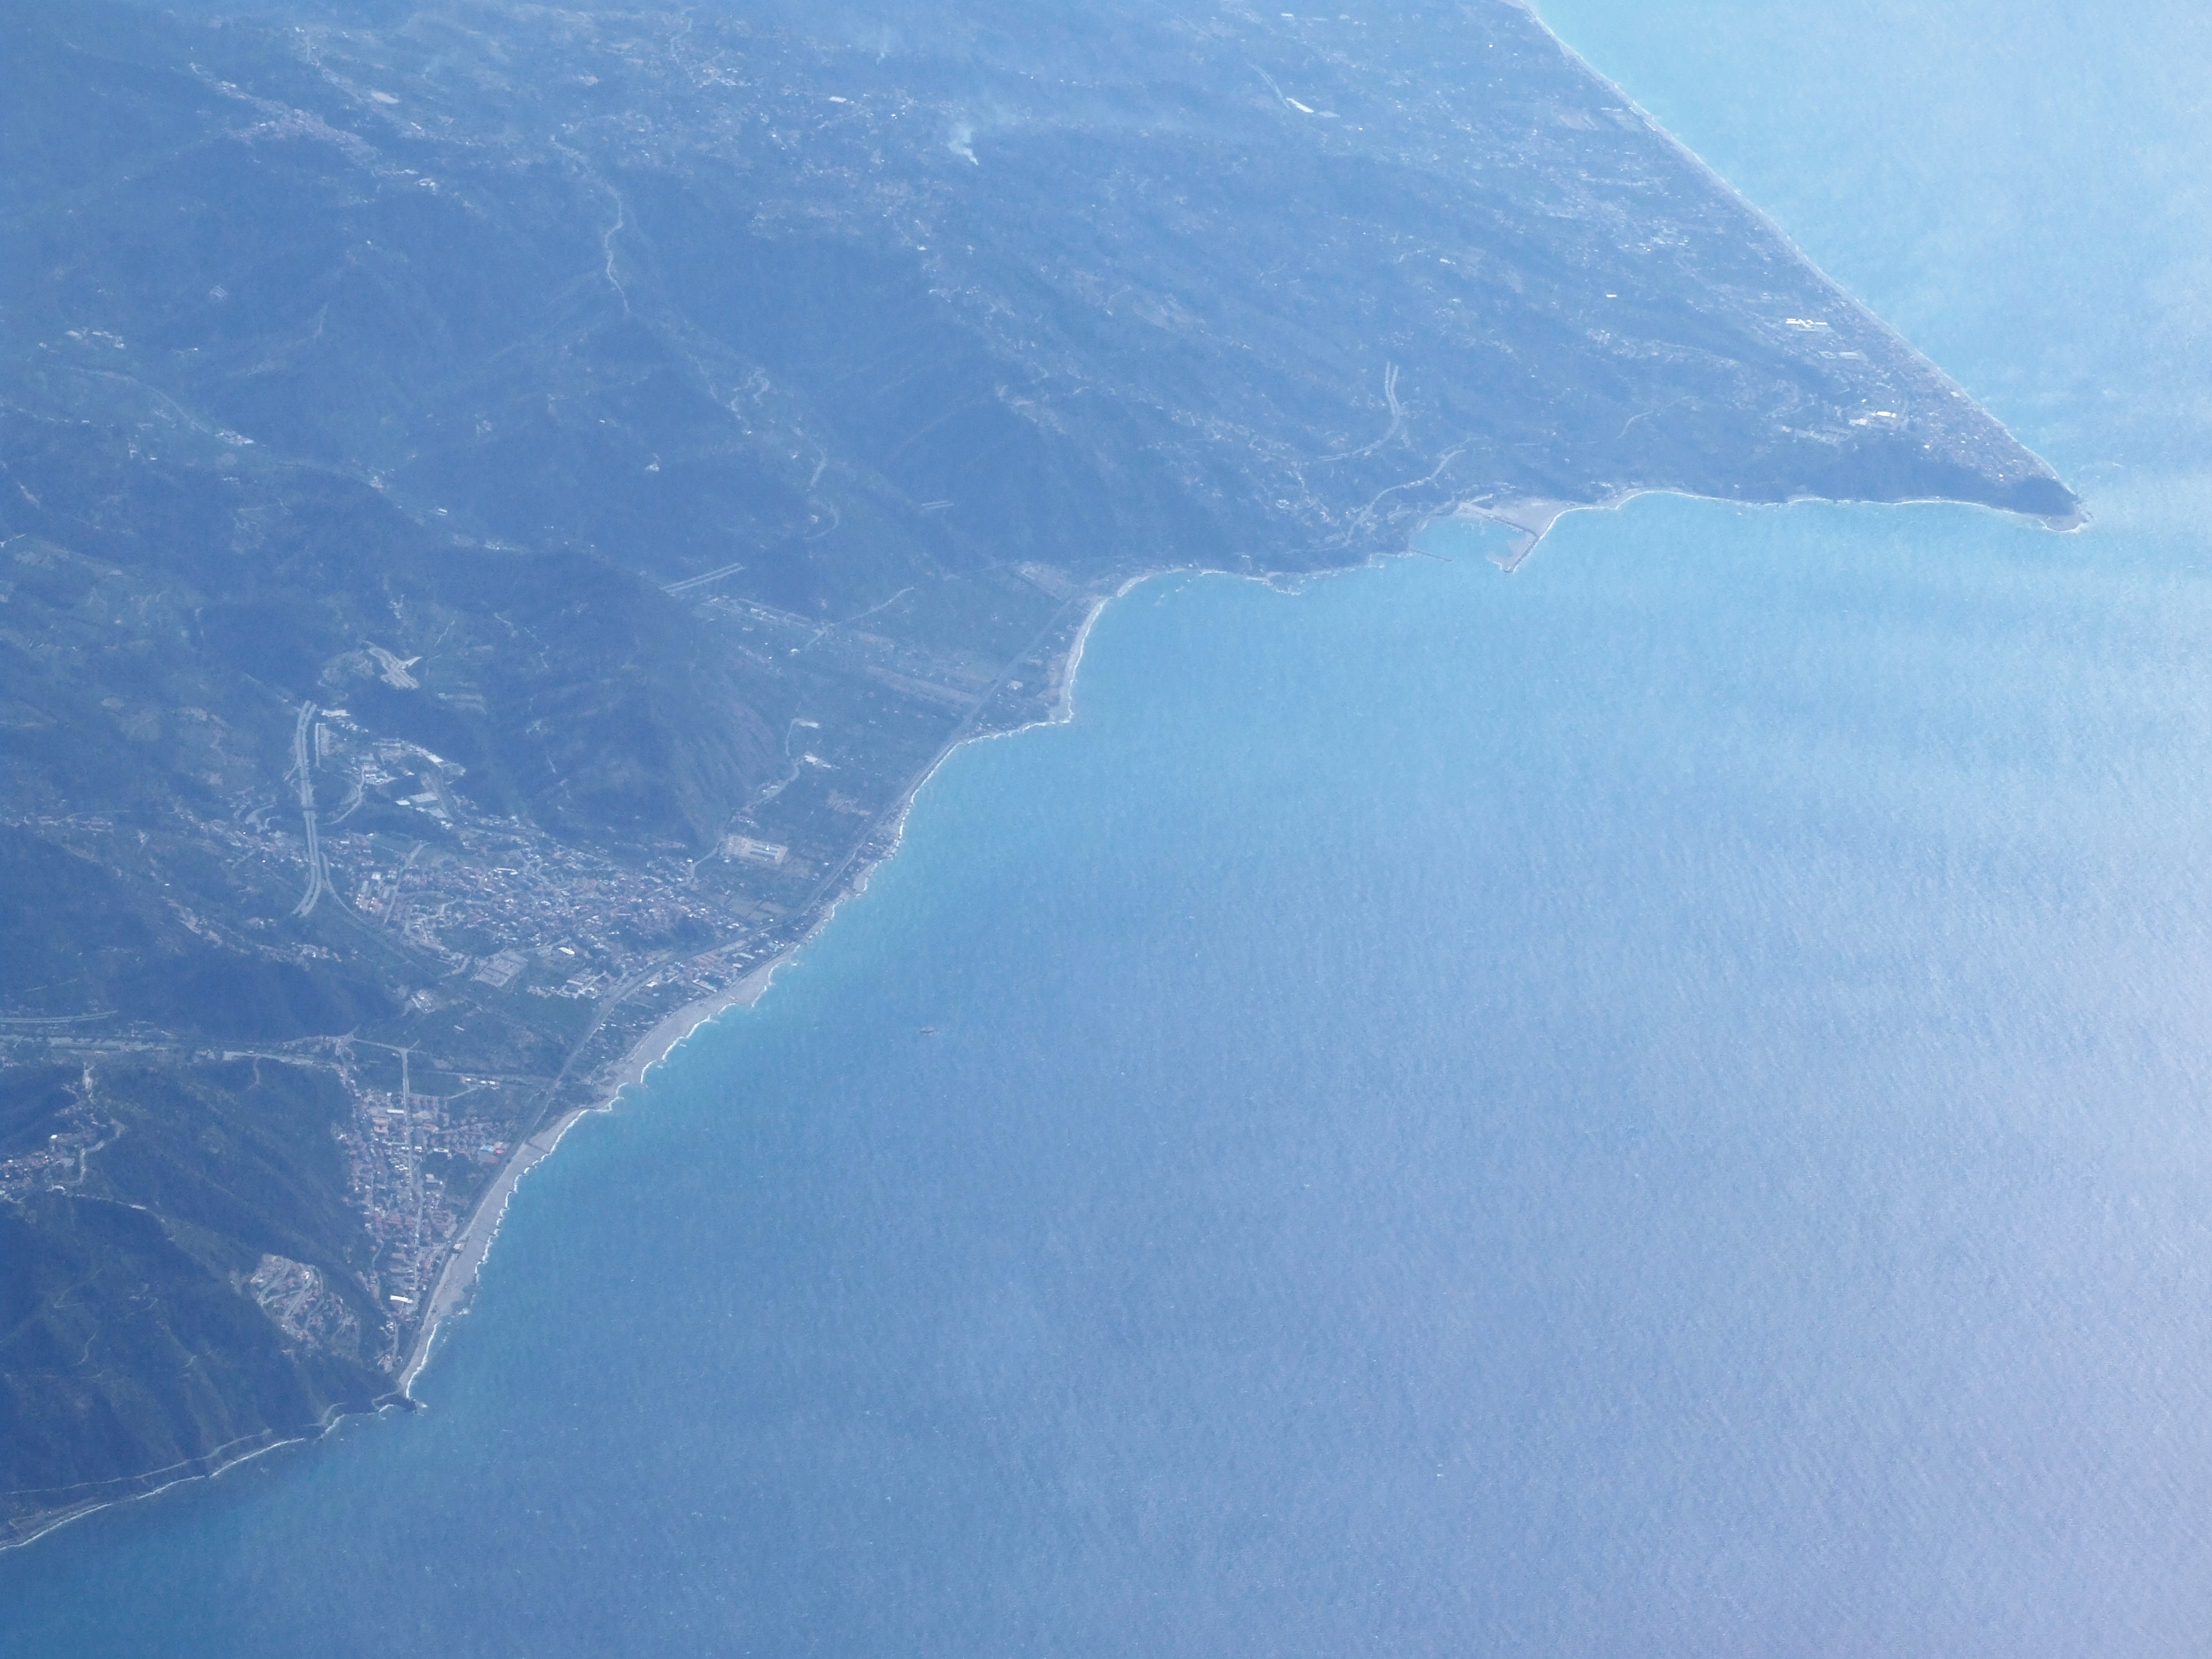 Capo d'Orlando Italy  city images : Capo d'Orlando Sicilia Italy Creative Commons by gnuckx | Flickr ...